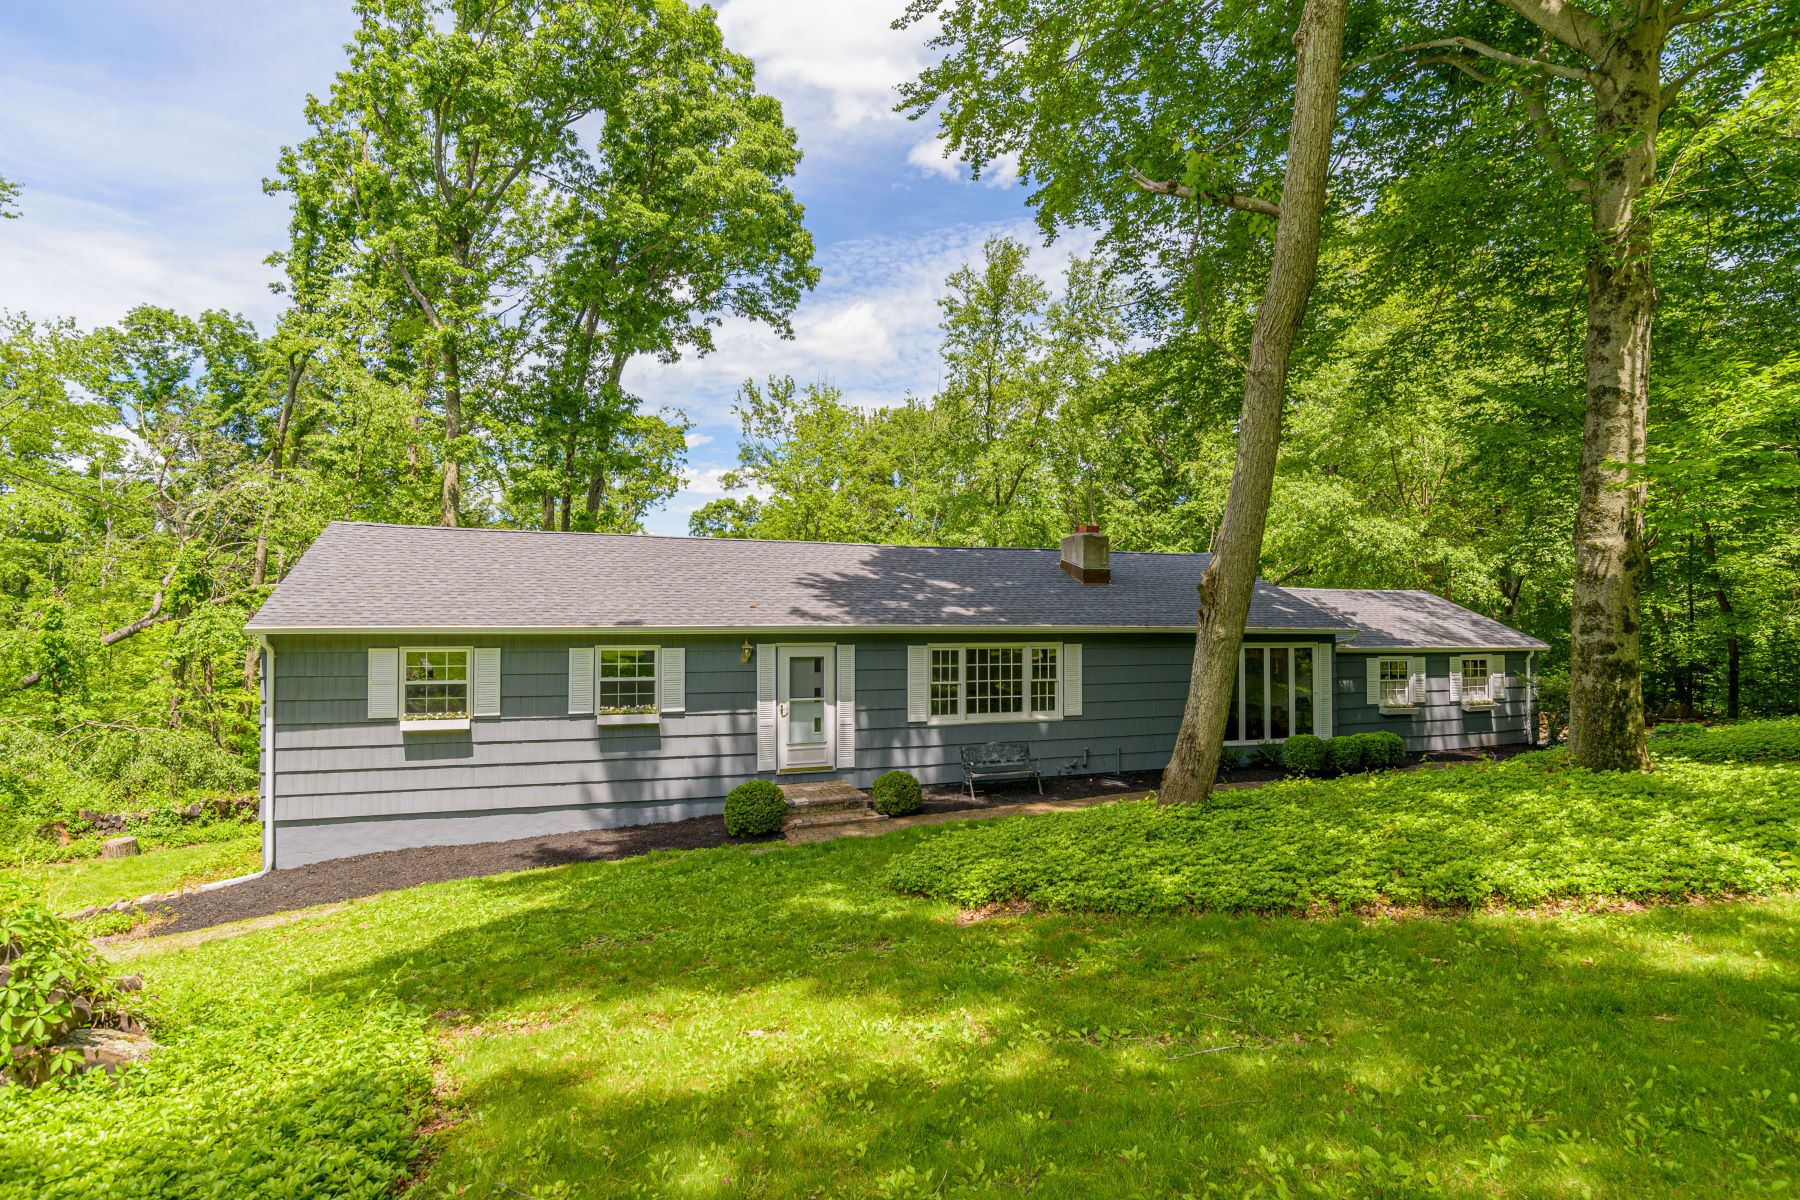 Single Family Homes for Sale at Mint Condition Ranch 65 Rita Drive New Fairfield, Connecticut 06812 United States